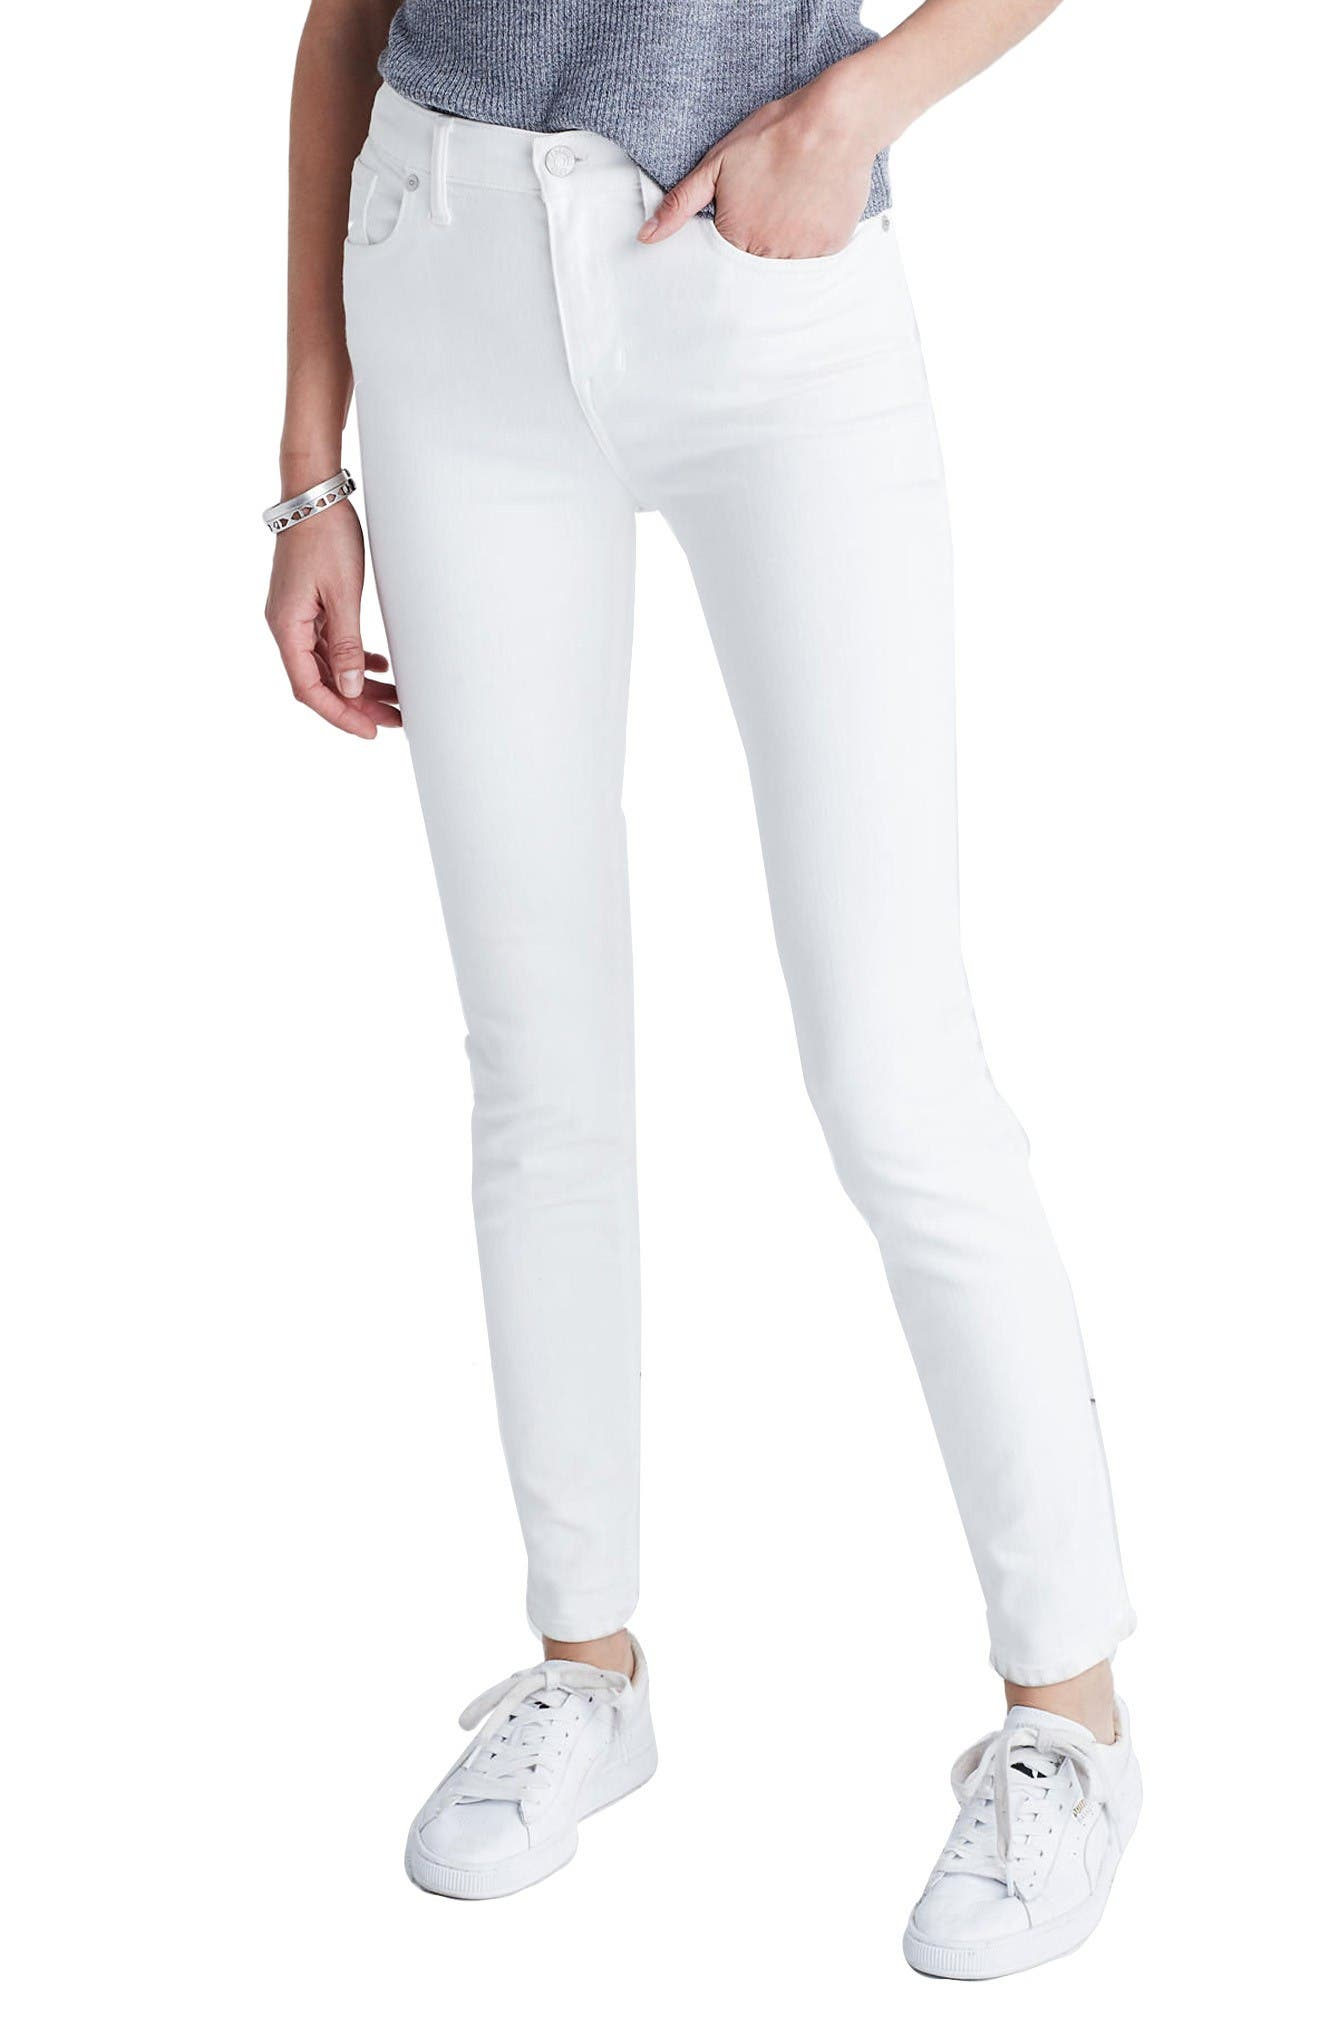 9-Inch High-Rise Skinny Jeans,                         Main,                         color, Pure White